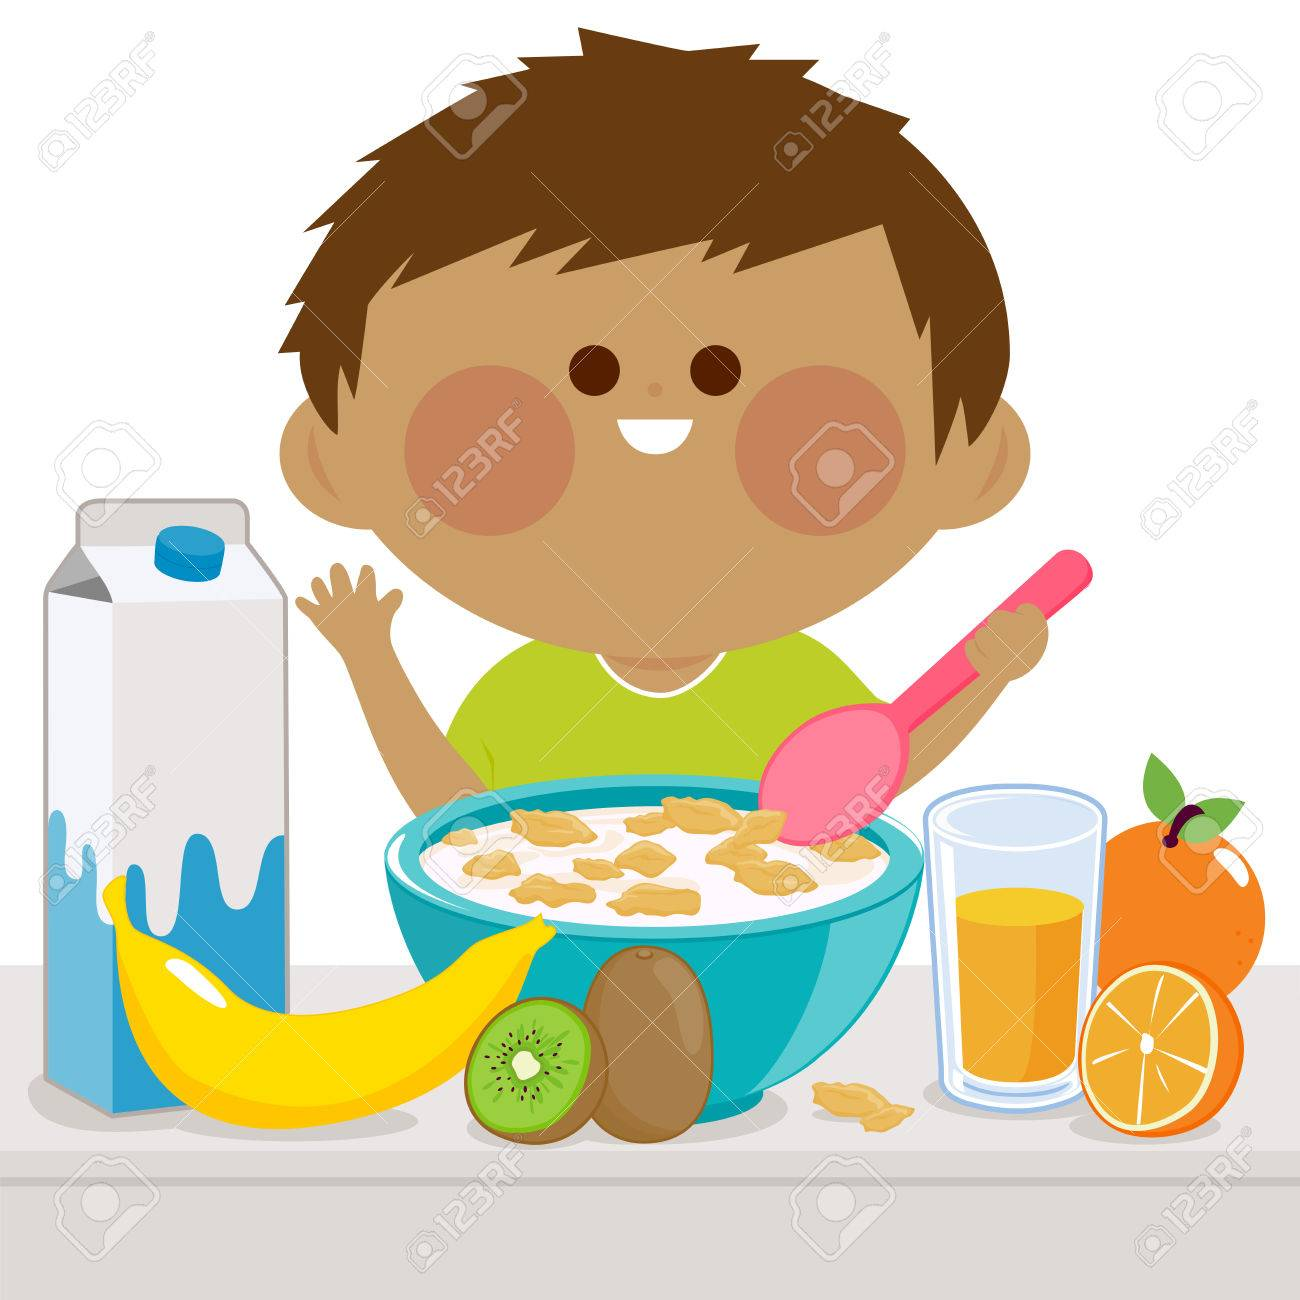 a boy is having his breakfast of cereal, milk, juice, and fruits